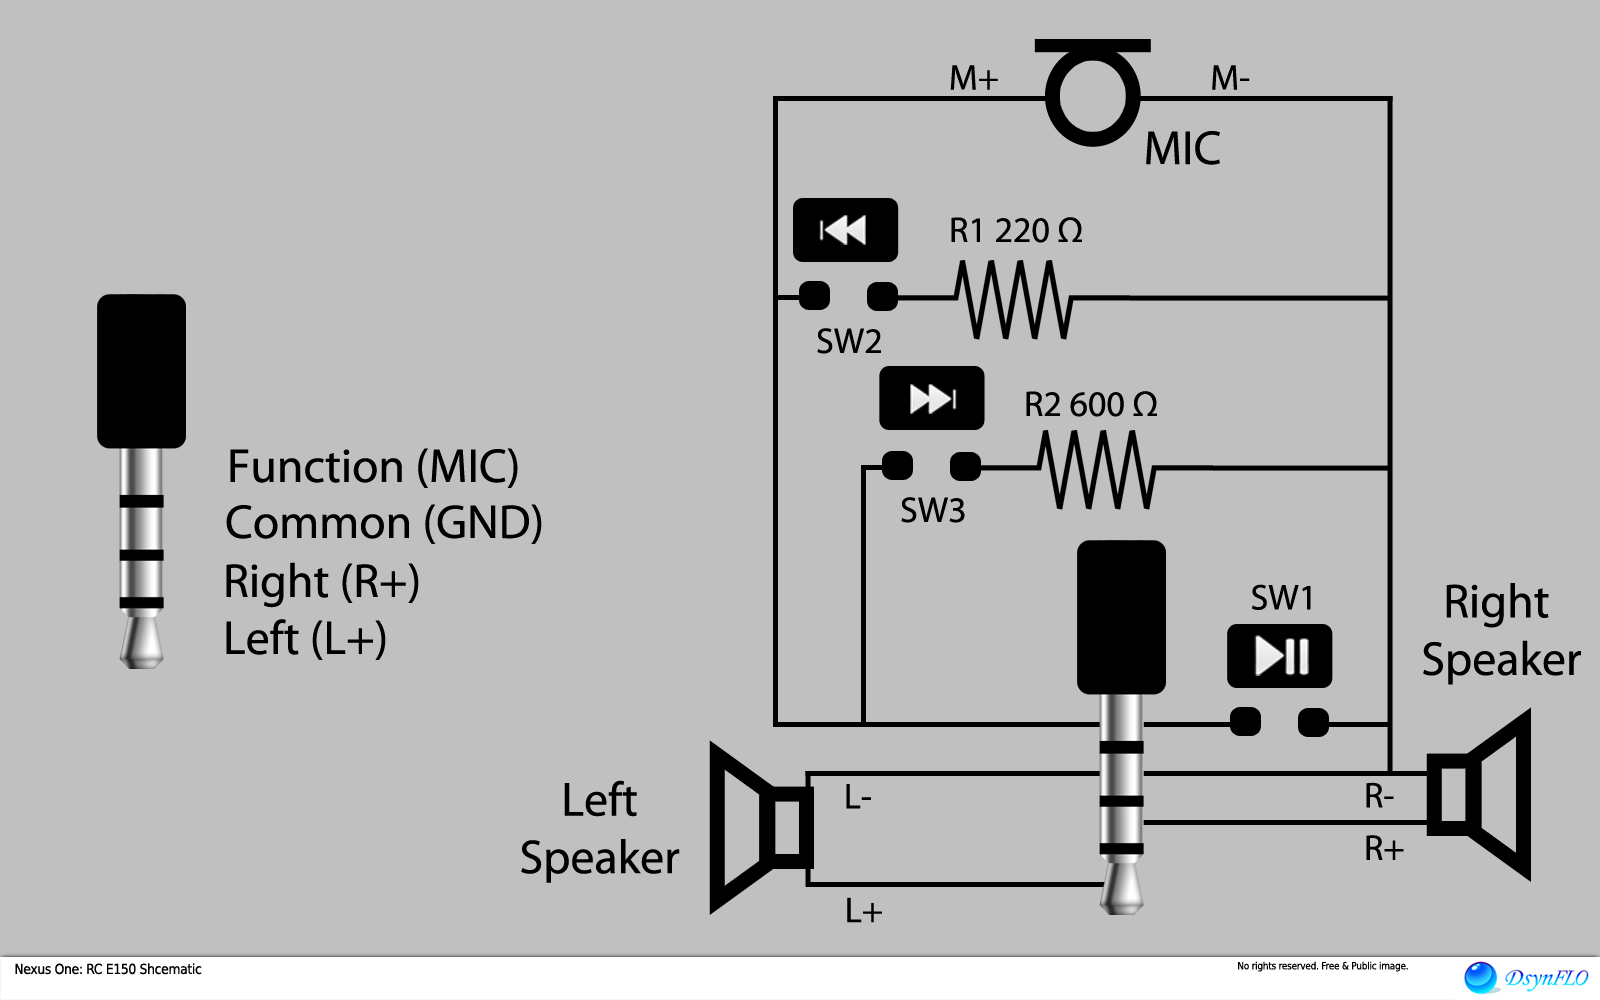 Dorable Klipsch Subwoofer Wiring Diagram Pictures - Wiring Diagram ...